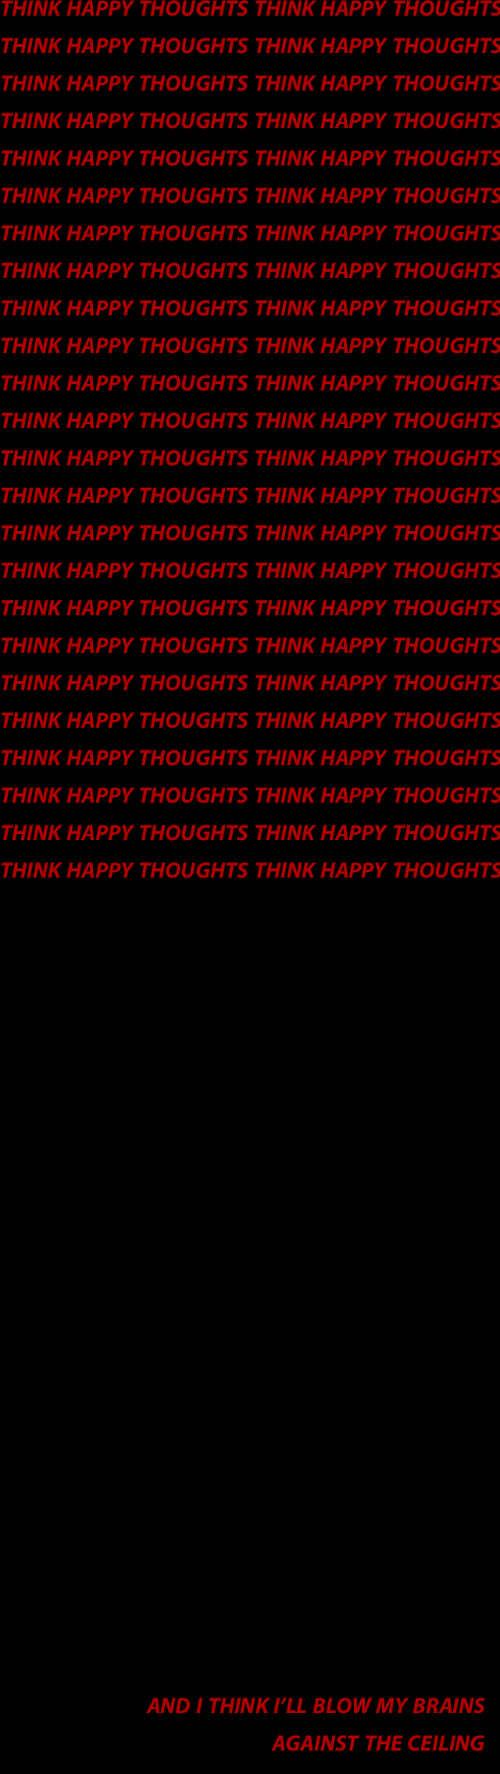 happy thoughts: THINK HAPPY THOUGHTS THINK HAPPY THOUGHTS  THINK HAPPY THOUGHTS THINK HAPPY THOUGHTS  THINK HAPPY THOUGHTS THINK HAPPY THOUGHTS  THINK HAPPY THOUGHTS THINK HAPPY THOUGHTS  THINK HAPPY THOUGHTS THINK HAPPY THOUGHTS  THINK HAPPY THOUGHTS THINK HAPPY THOUGHTS  THINK HAPPY THOUGHTS THINK HAPPY THOUGHTS  THINK HAPPY THOUGHTS THINK HAPPY THOUGHTS  THINK HAPPY THOUGHTS THINK HAPPY THOUGHTS  THINK HAPPY THOUGHTS THINK HAPPY THOUGHTS  THINK HAPPY THOUGHTS THINK HAPPY THOUGHTS  THINK HAPPY THOUGHTS THINK HAPPY THOUGHTS  THINK HAPPY THOUGHTS THINK HAPPY THOUGHTS  THINK HAPPY THOUGHTS THINK HAPPY THOUGHTS  THINK HAPPY THOUGHTS THINK HAPPY THOUGHTS  THINK HAPPY THOUGHTS THINK HAPPY THOUGHTS  THINK HAPPY THOUGHTS THINK HAPPY THOUGHTS  THINK HAPPY THOUGHTS THINK HAPPY THOUGHTS  THINK HAPPY THOUGHTS THINK HAPPY THOUGHTS  THINK HAPPY THOUGHTS THINK HAPPY THOUGHTS  THINK HAPPY THOUGHTS THINK HAPPY THOUGHTS  THINK HAPPY THOUGHTS THINK HAPPY THOUGHTS  THINK HAPPY THOUGHTS THINK HAPPY THOUGHTS  THINK HAPPY THOUGHTS THINK HAPPY THOUGHTS   AND I THINK P'LL BLOW MY BRAINS  AGAINST THE CEILING